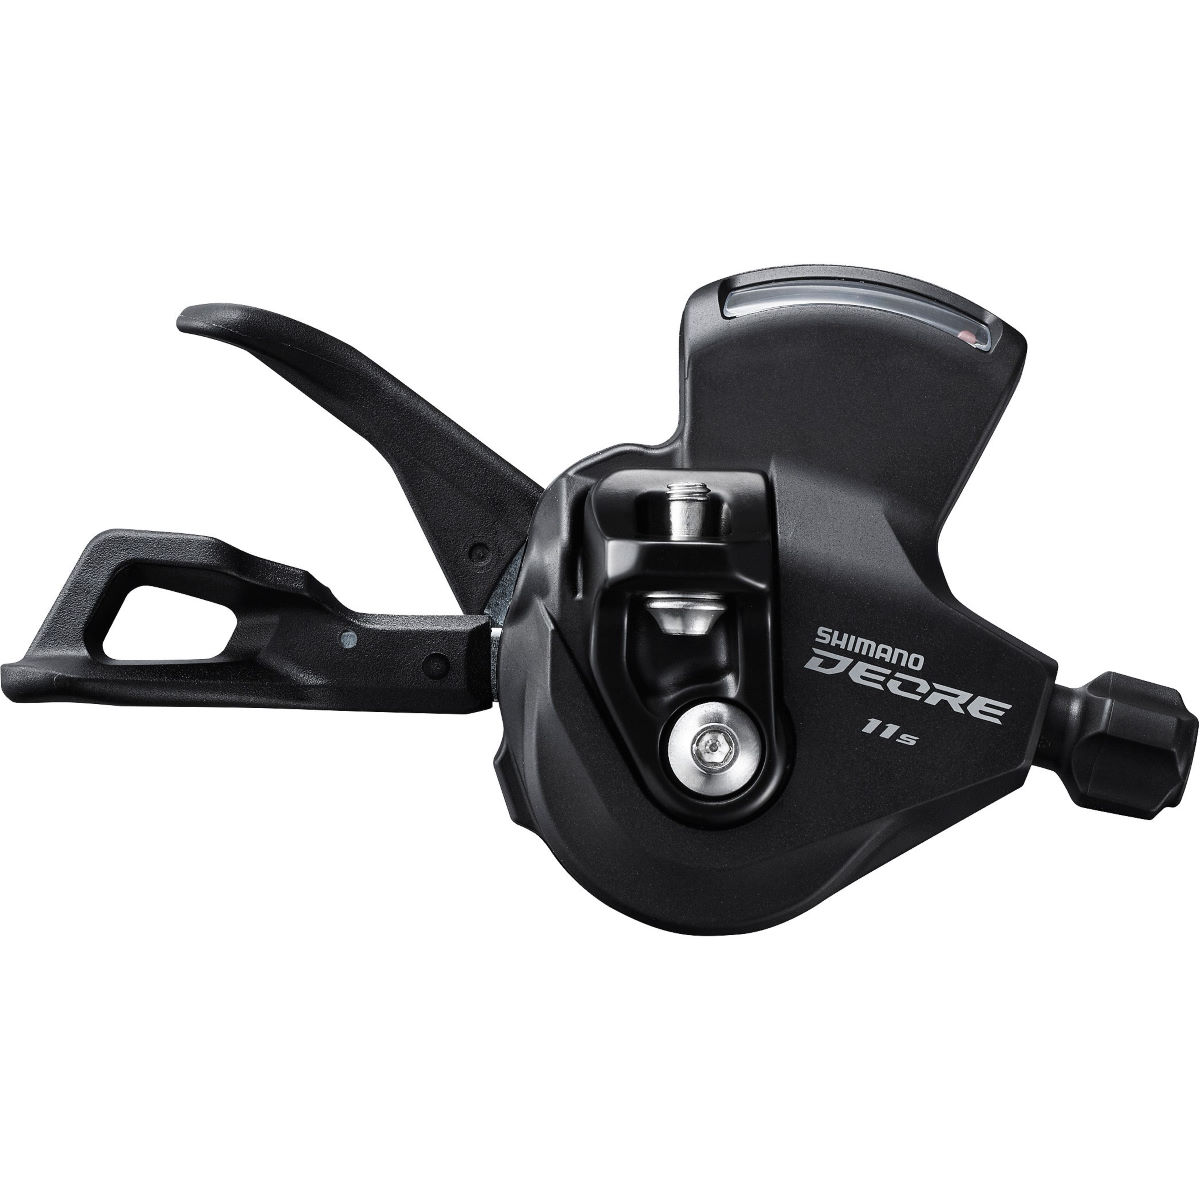 Shimano M5100 Deore 11 Speed Rear Shifter - Cambios traseros